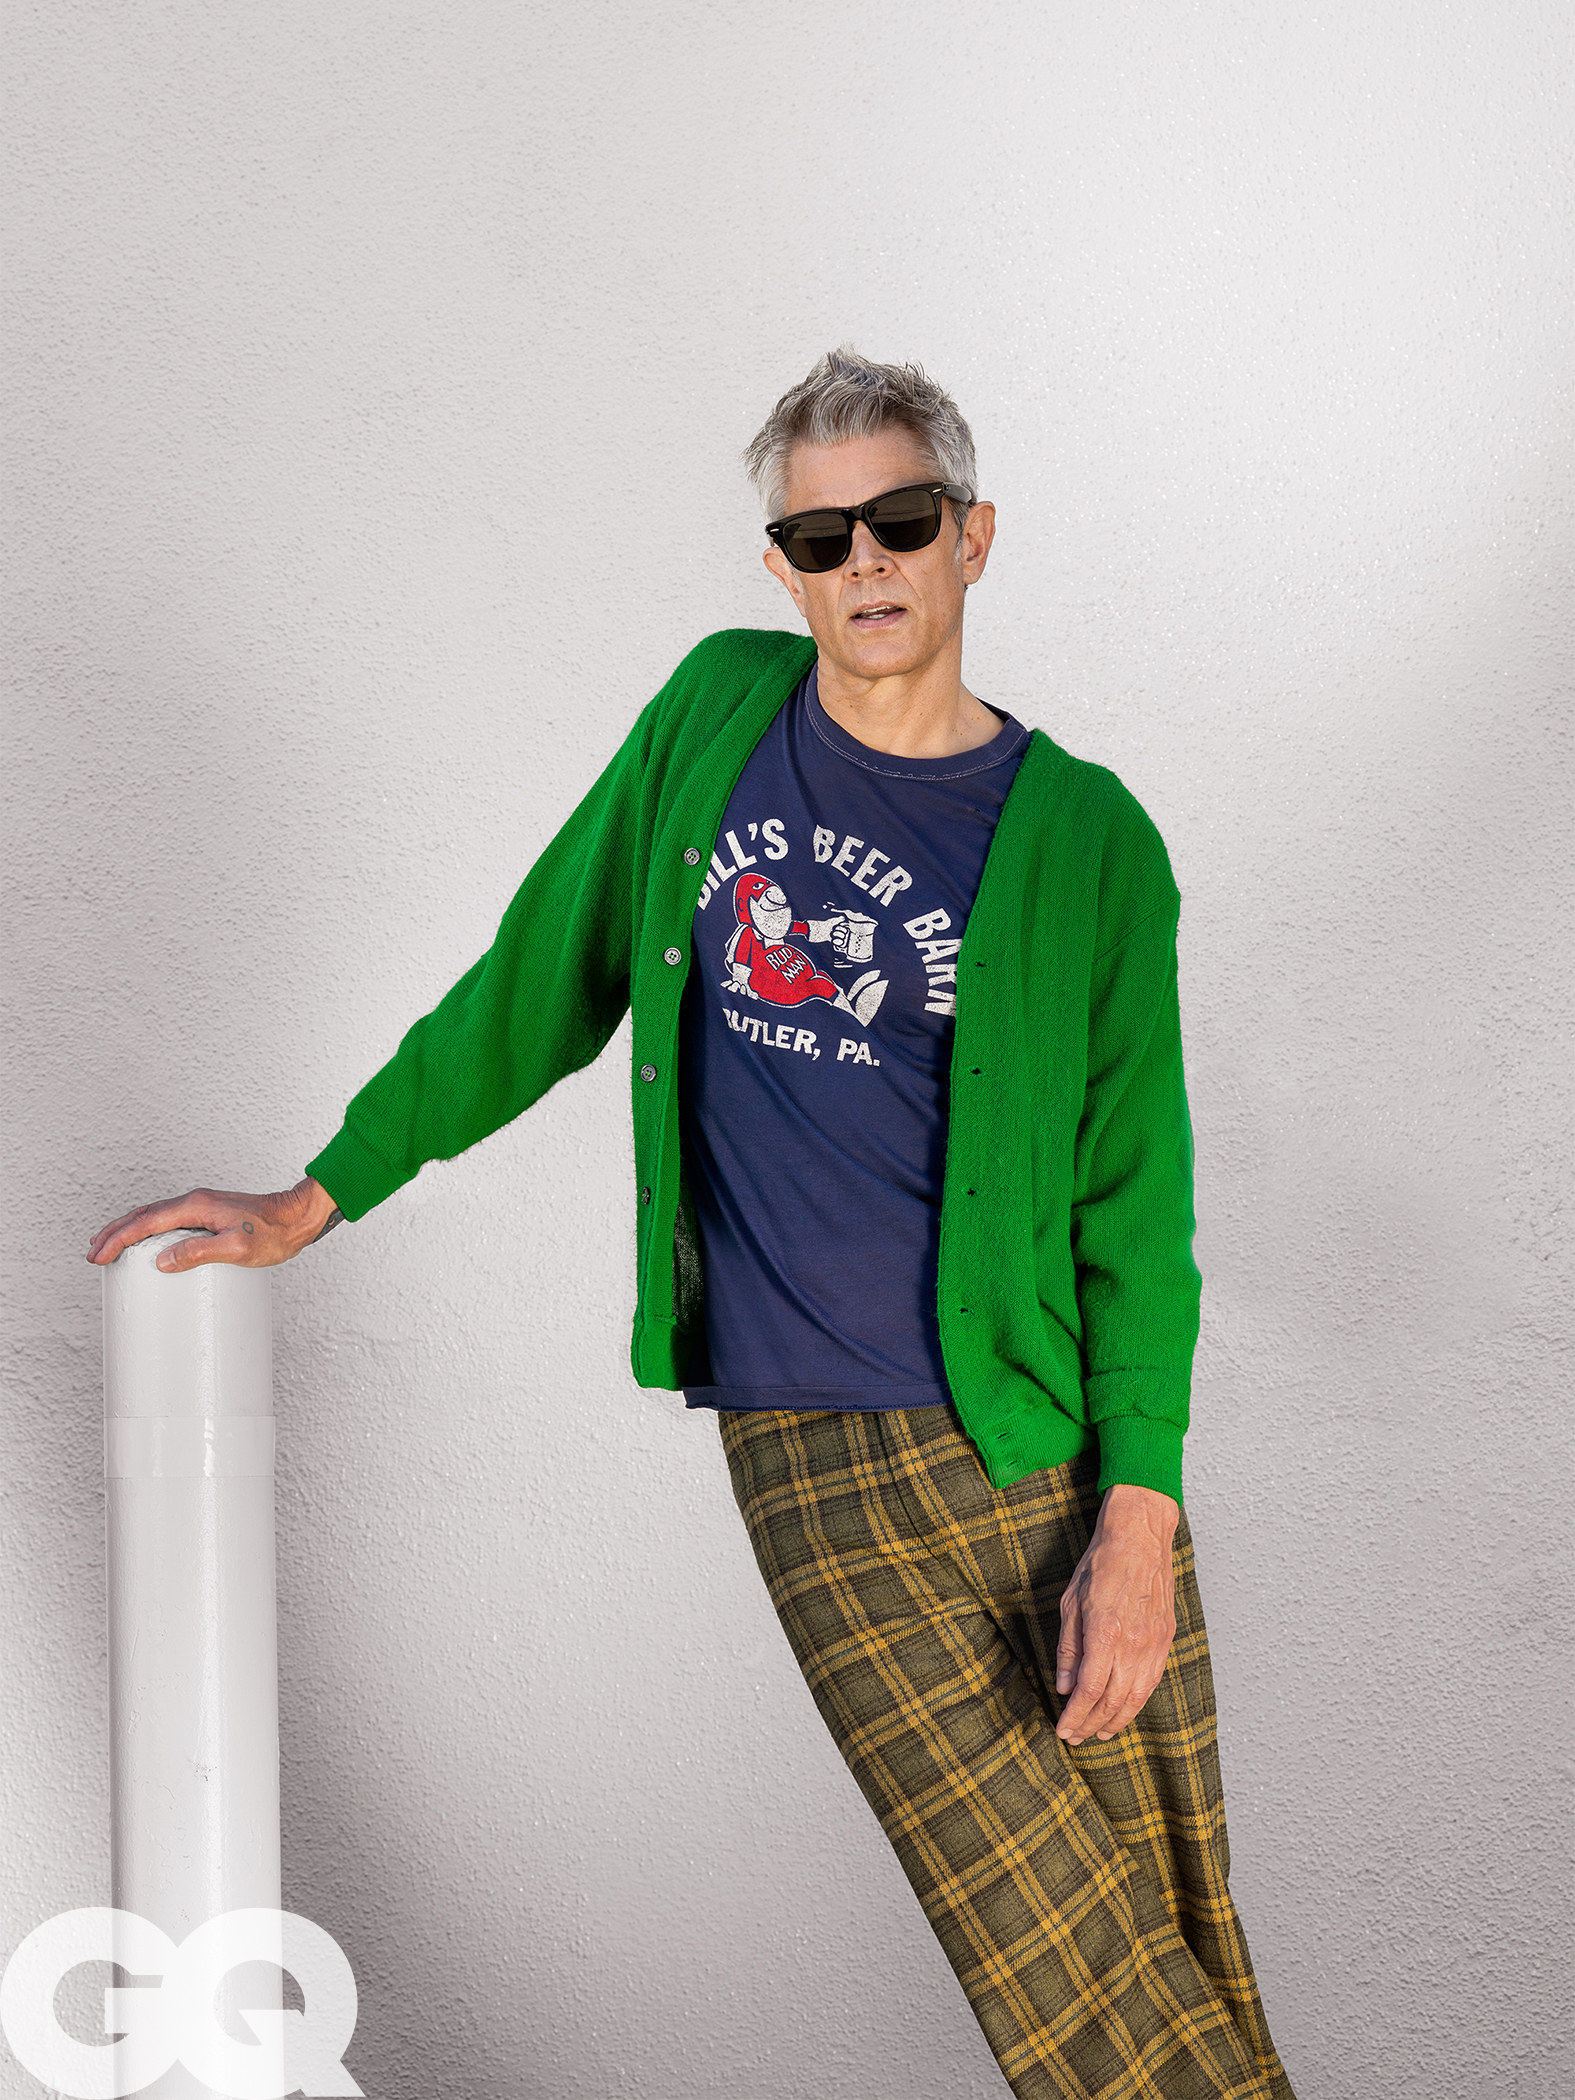 50-year-old Johnny posing for GQ in a T, cardigan, and plaid pants